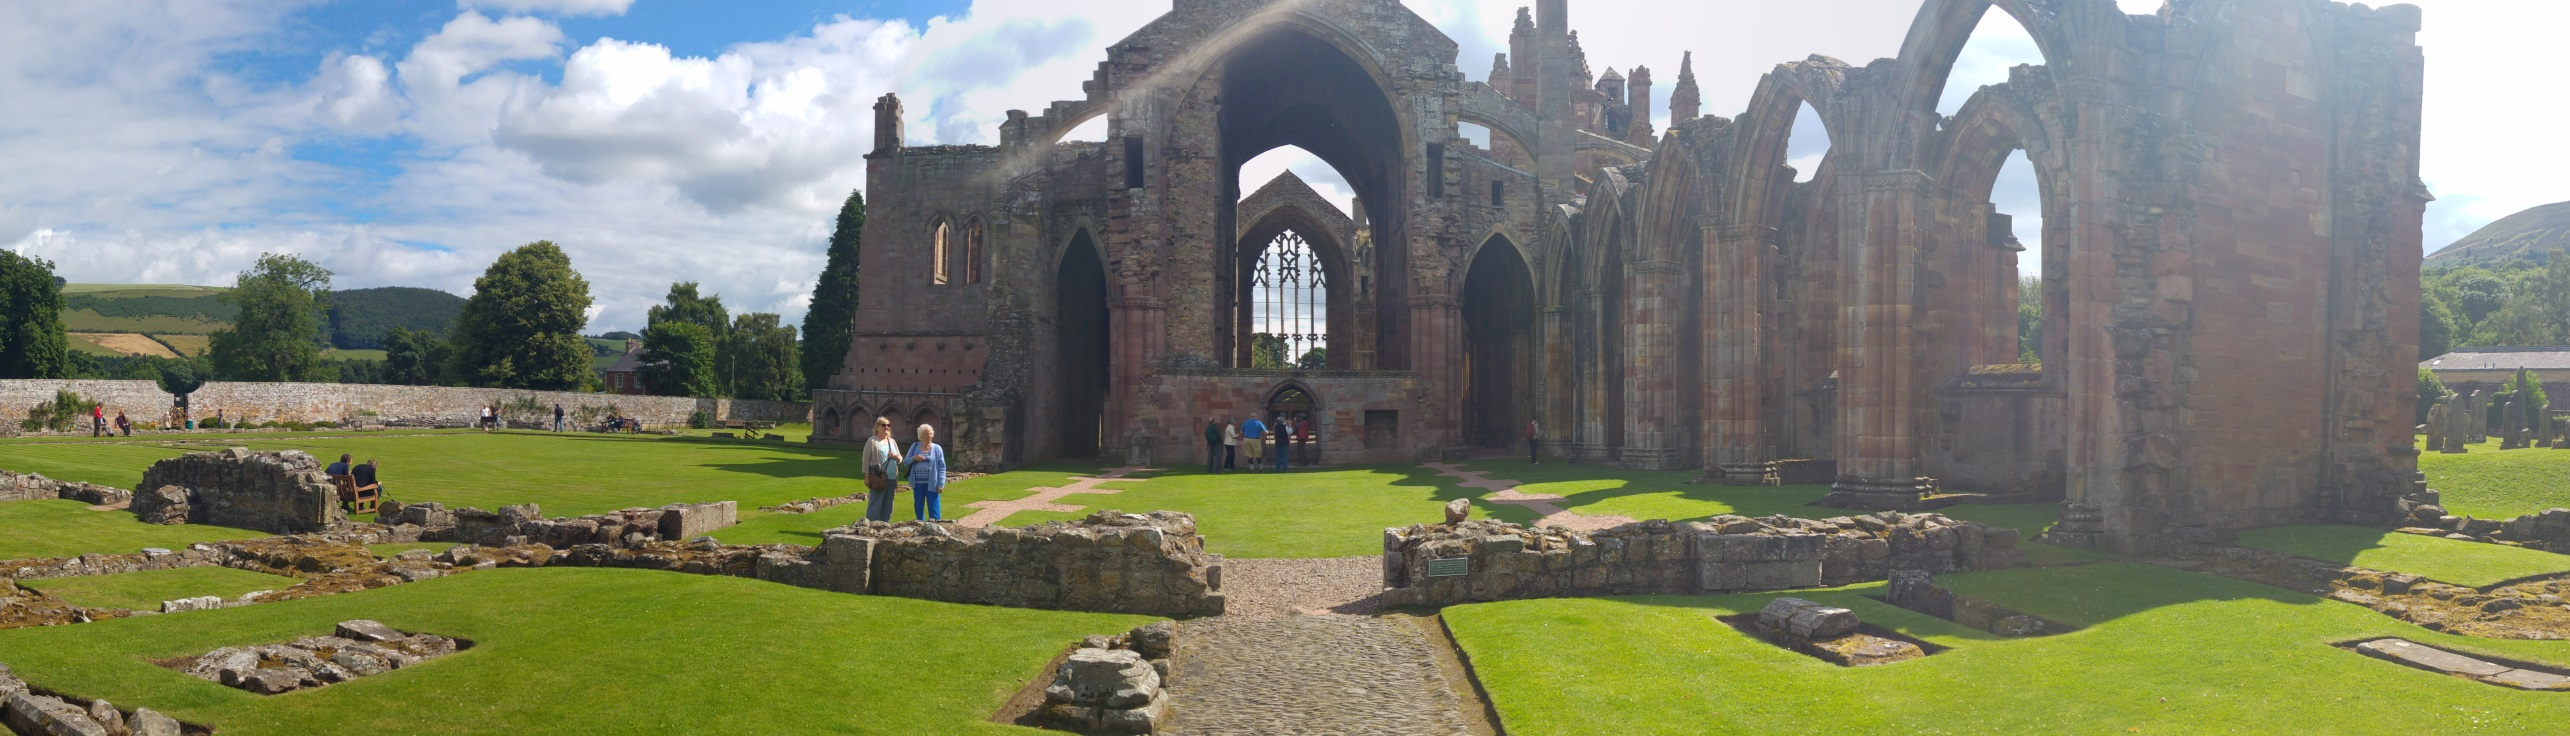 Die Melrose Abbey in Schottland.